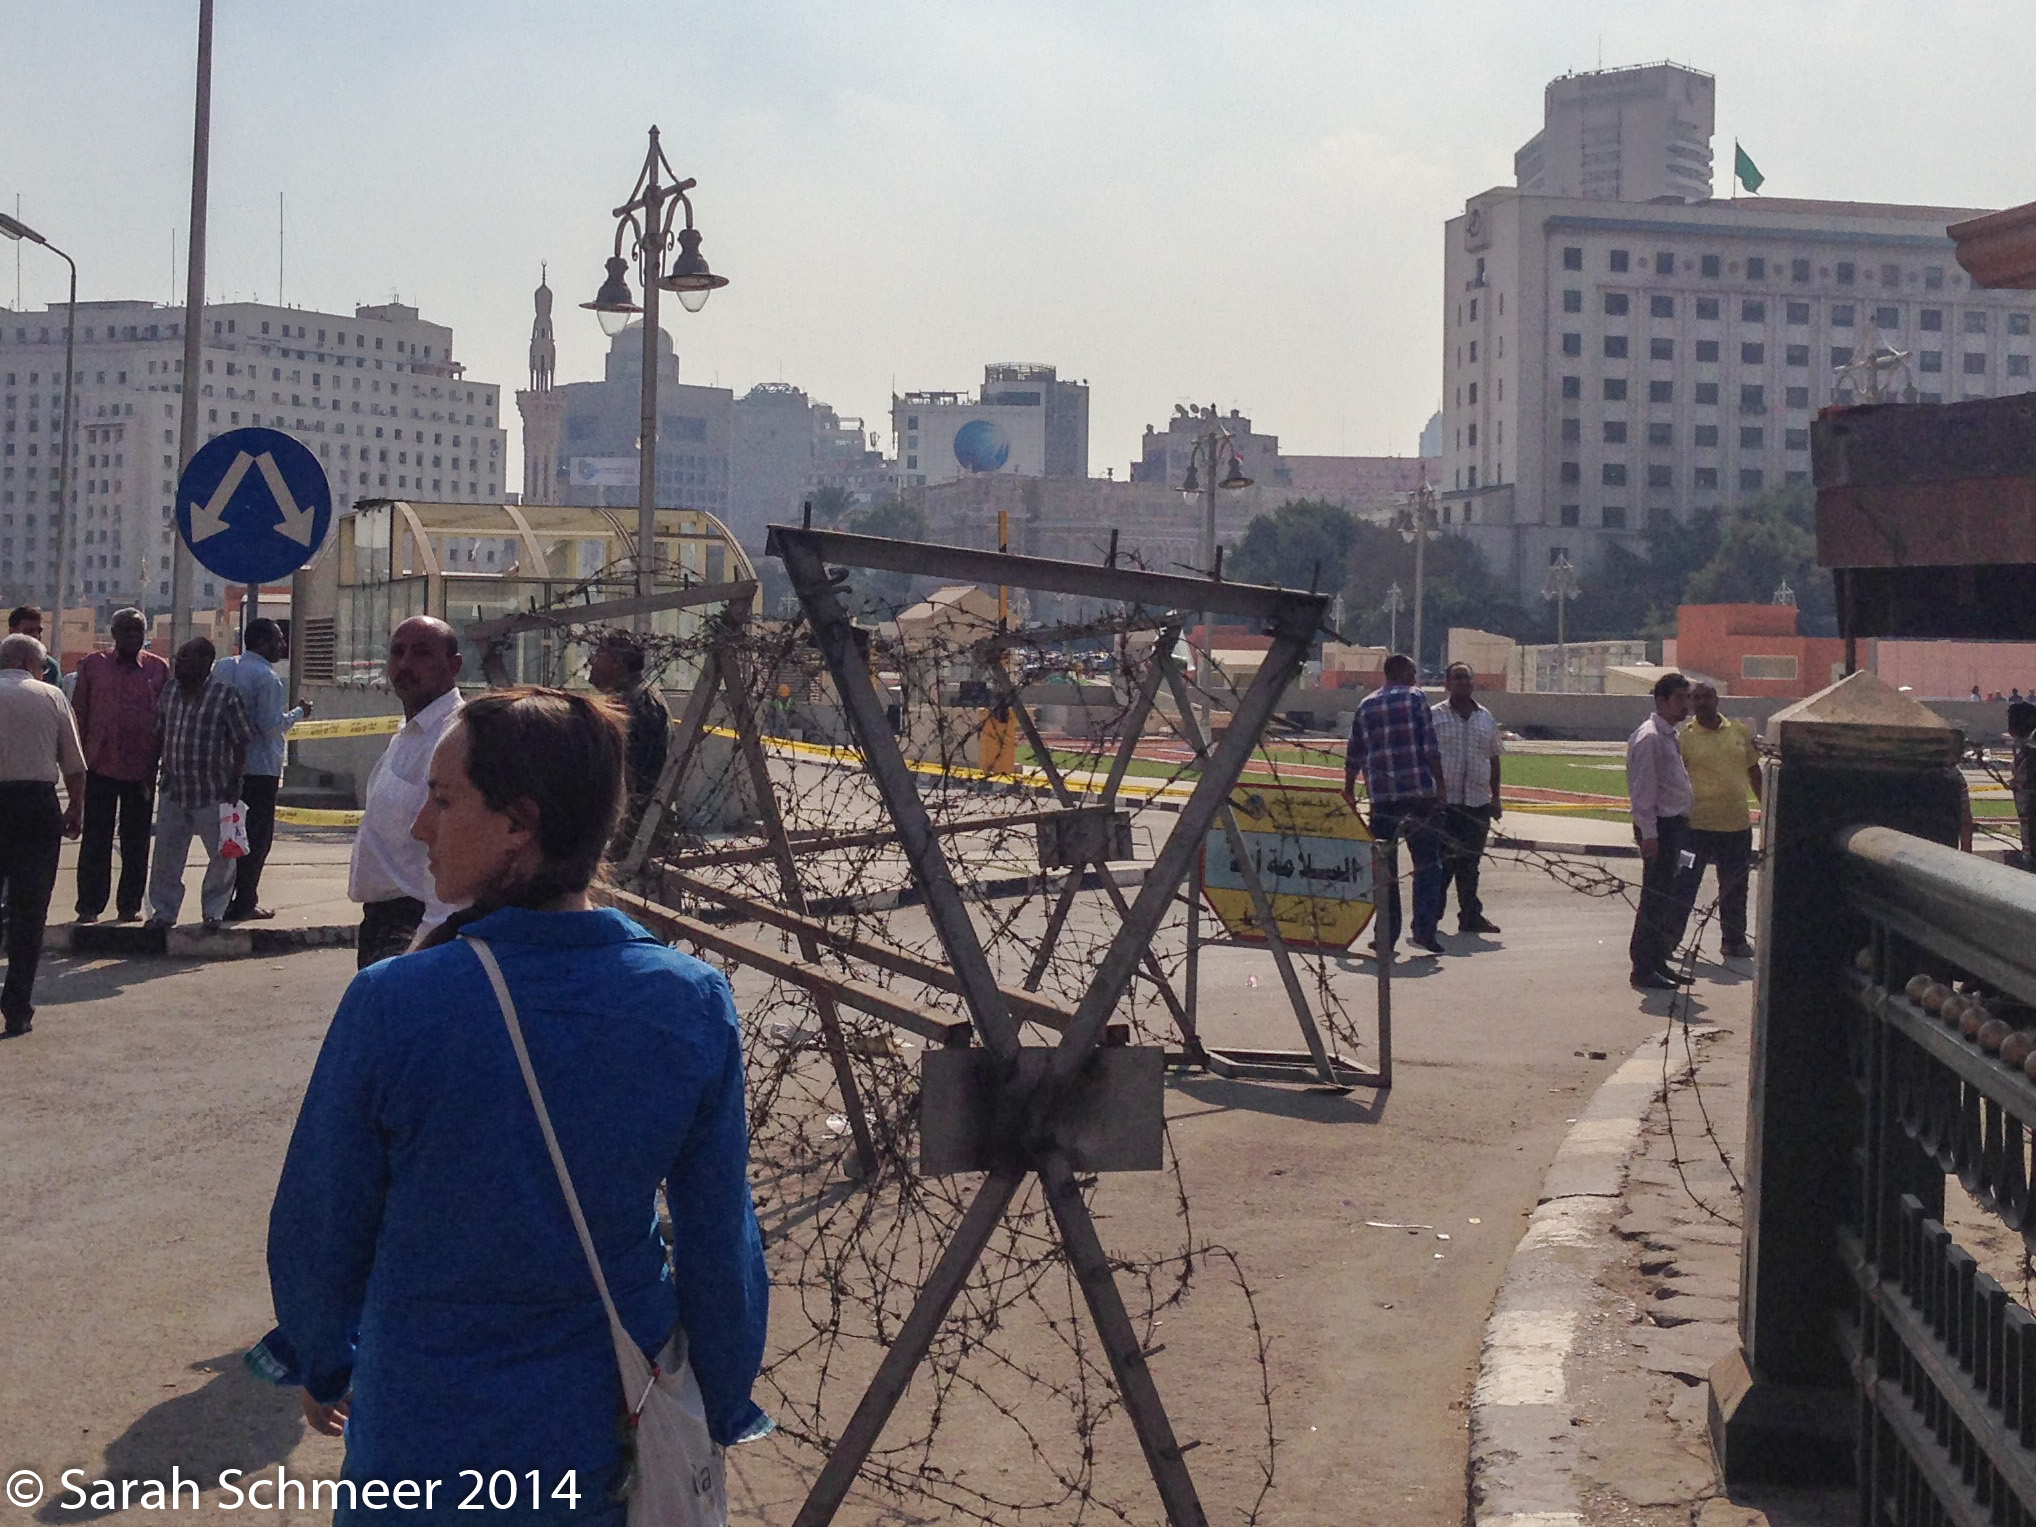 Negotiating the tangle of people, cars and barbed wire in front of the museum